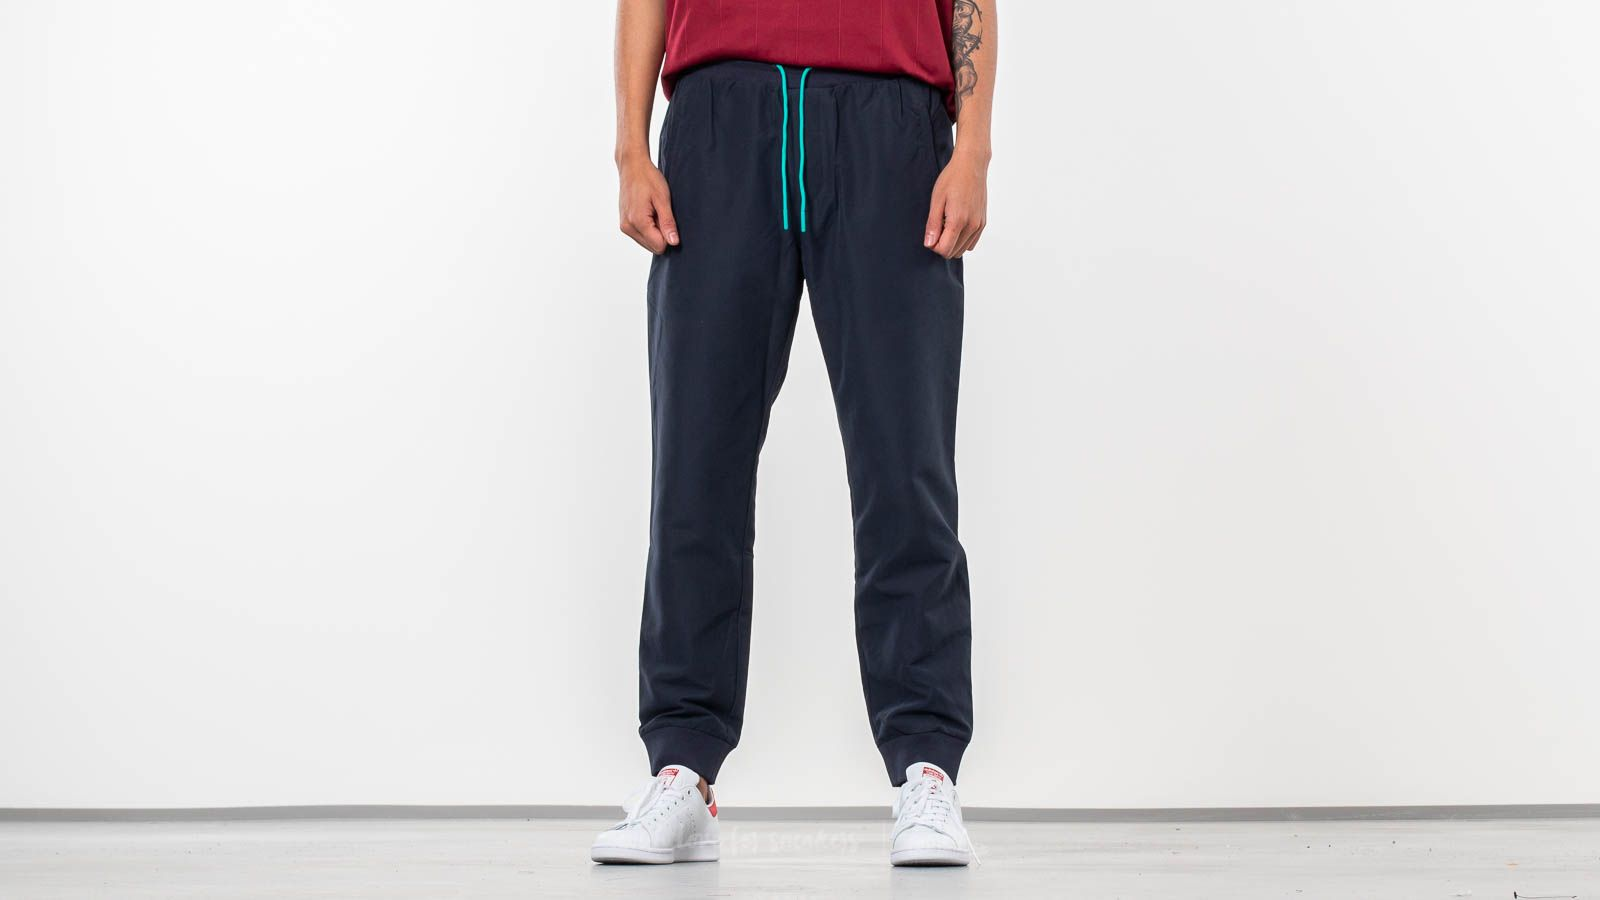 adidas Originals Harpurhey Pants